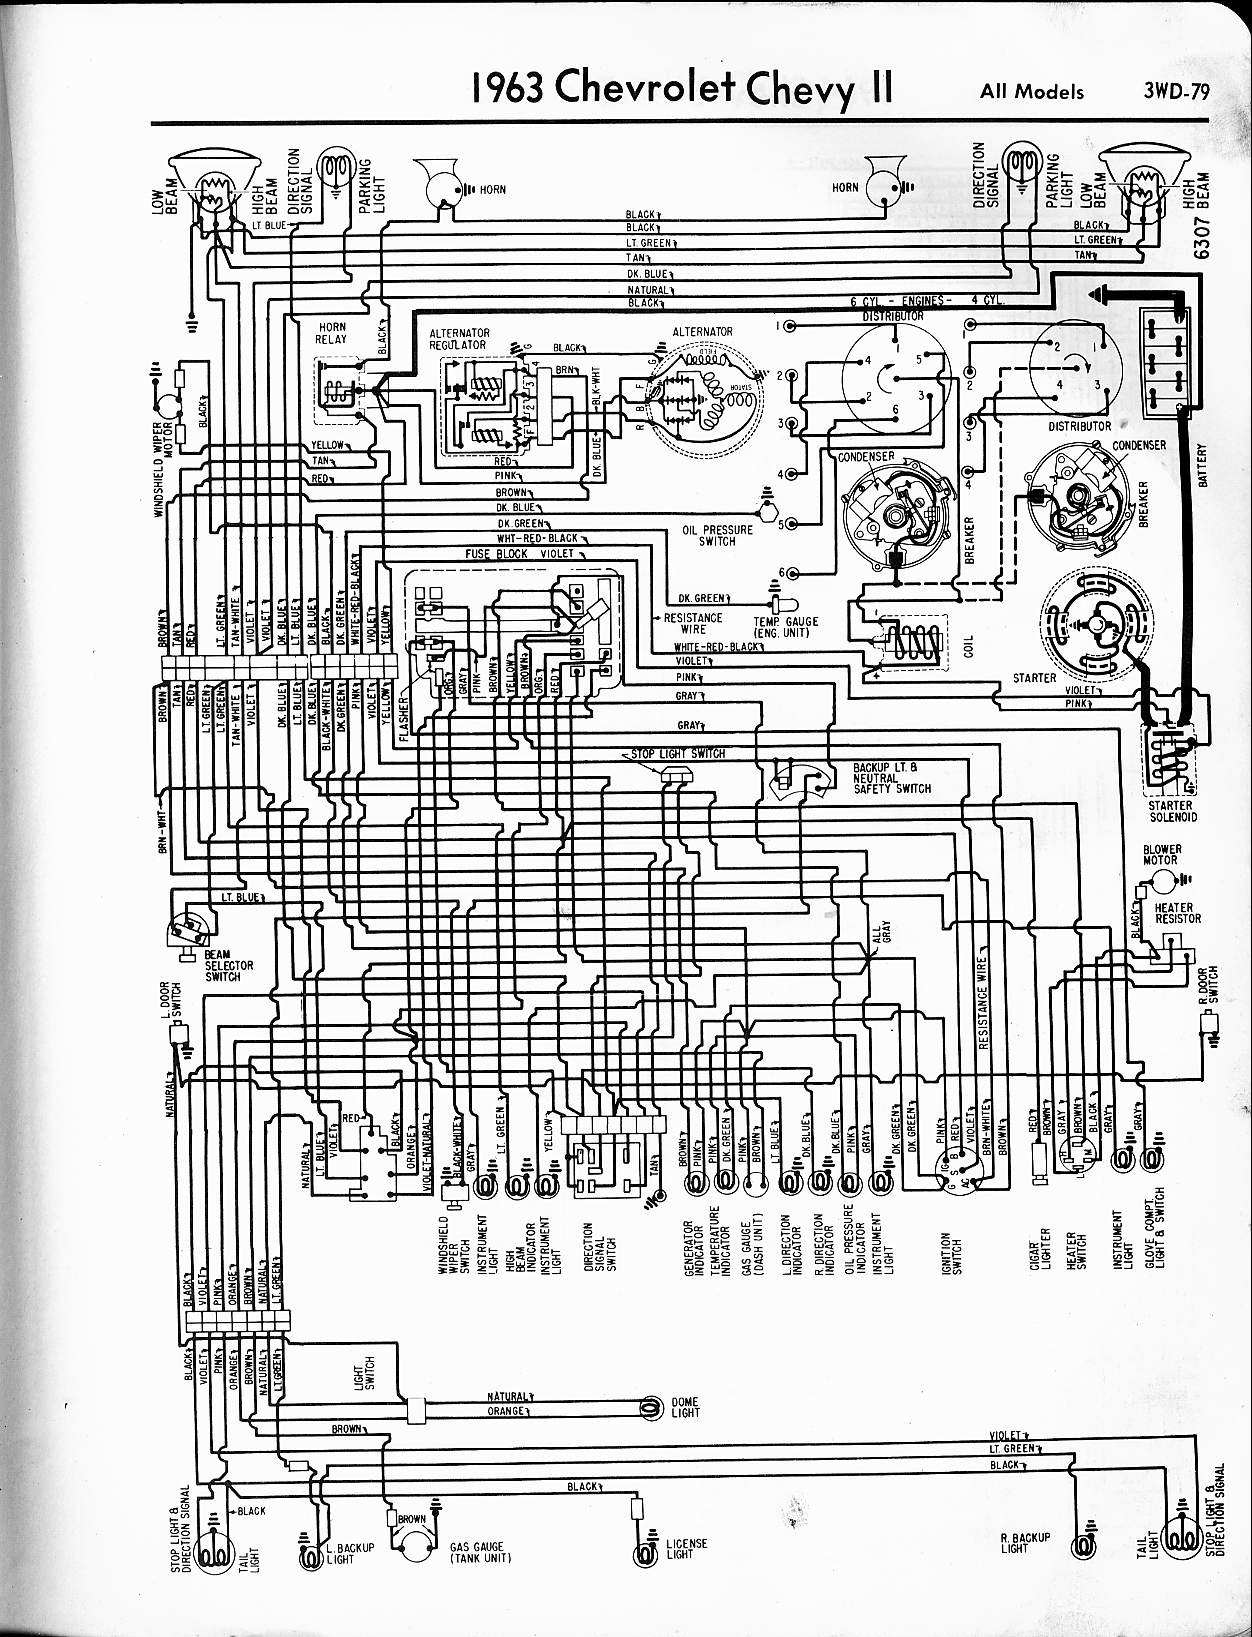 MWireChev63_3WD 079 57 65 chevy wiring diagrams 3 Wire Headlight Wiring Diagram at gsmx.co